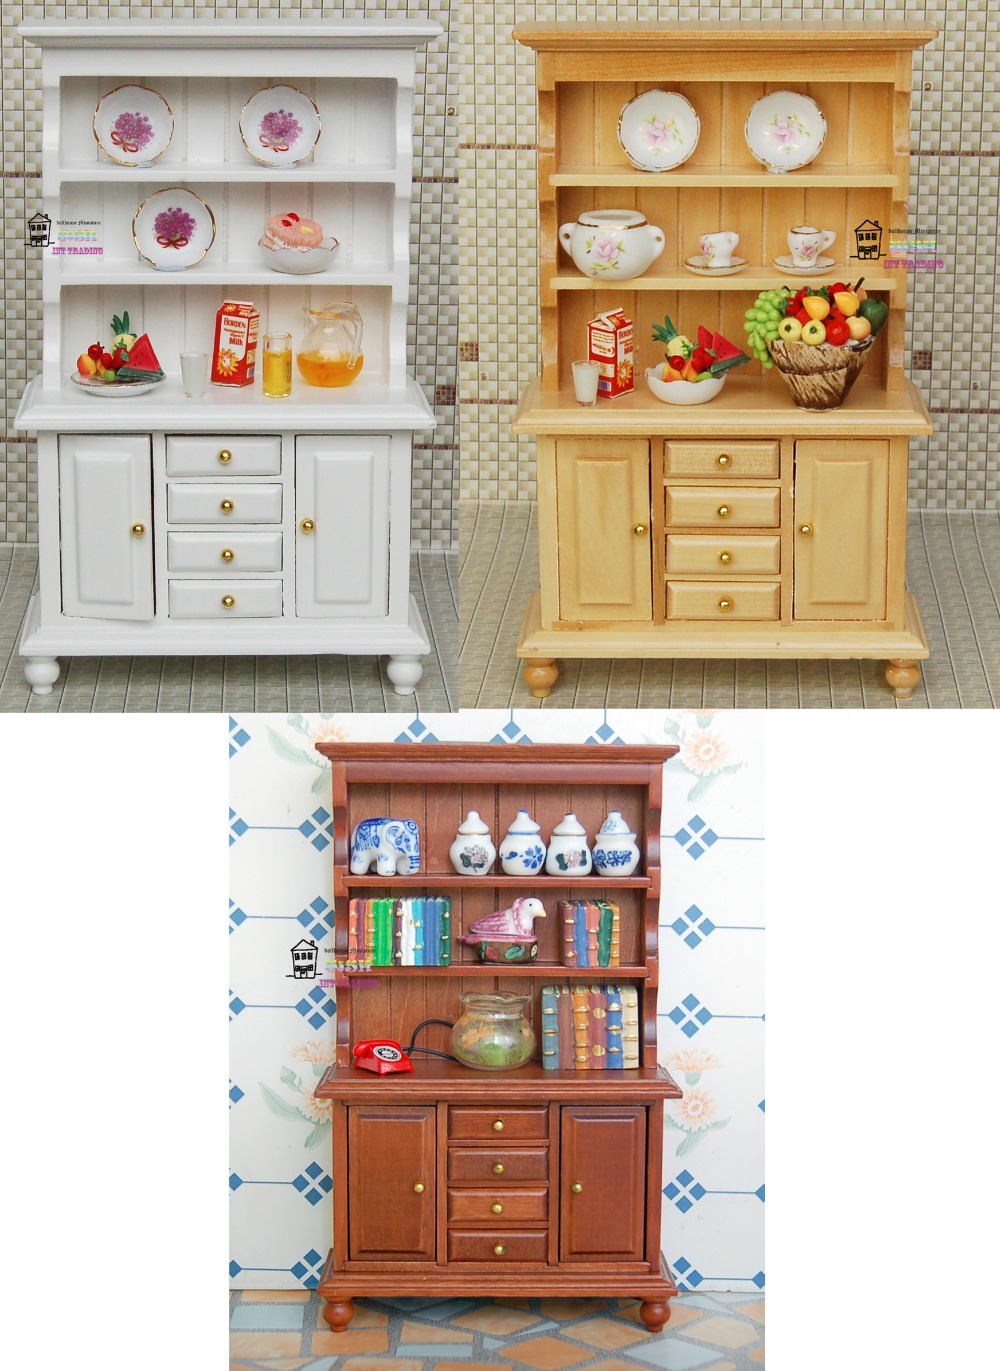 6 57 Doll House Miniature 1 12 Size Dolls Furniture Wood Display Cabinet Kitchen Accessories